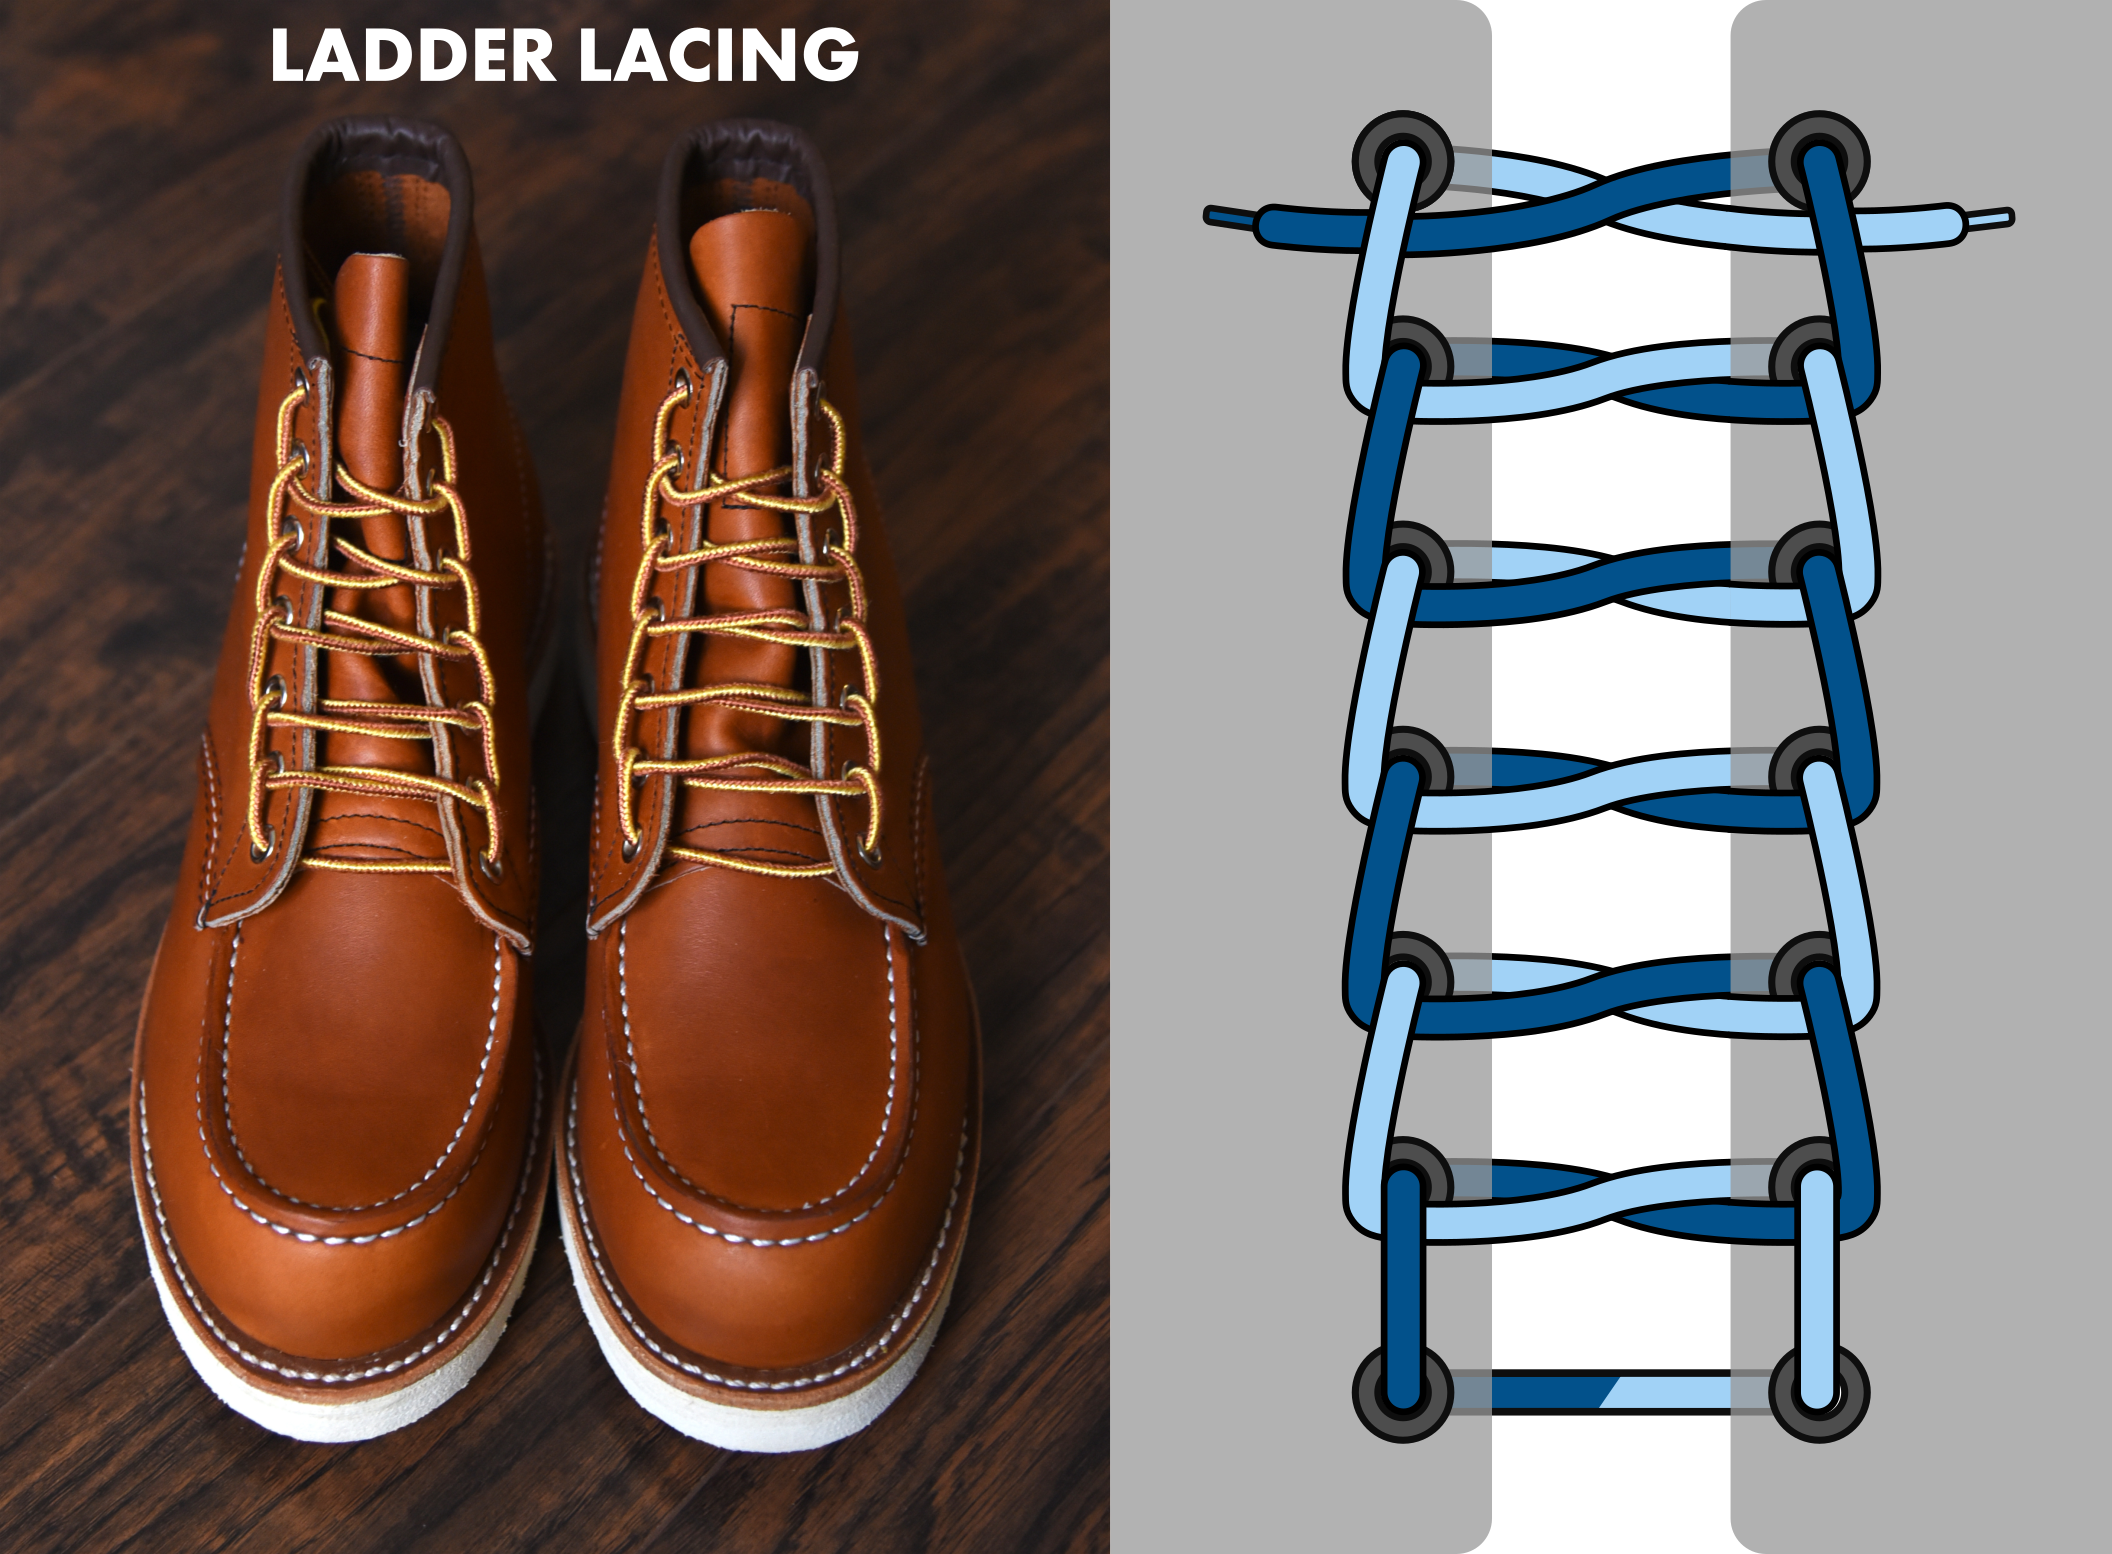 Ladder lacing diagram for boots